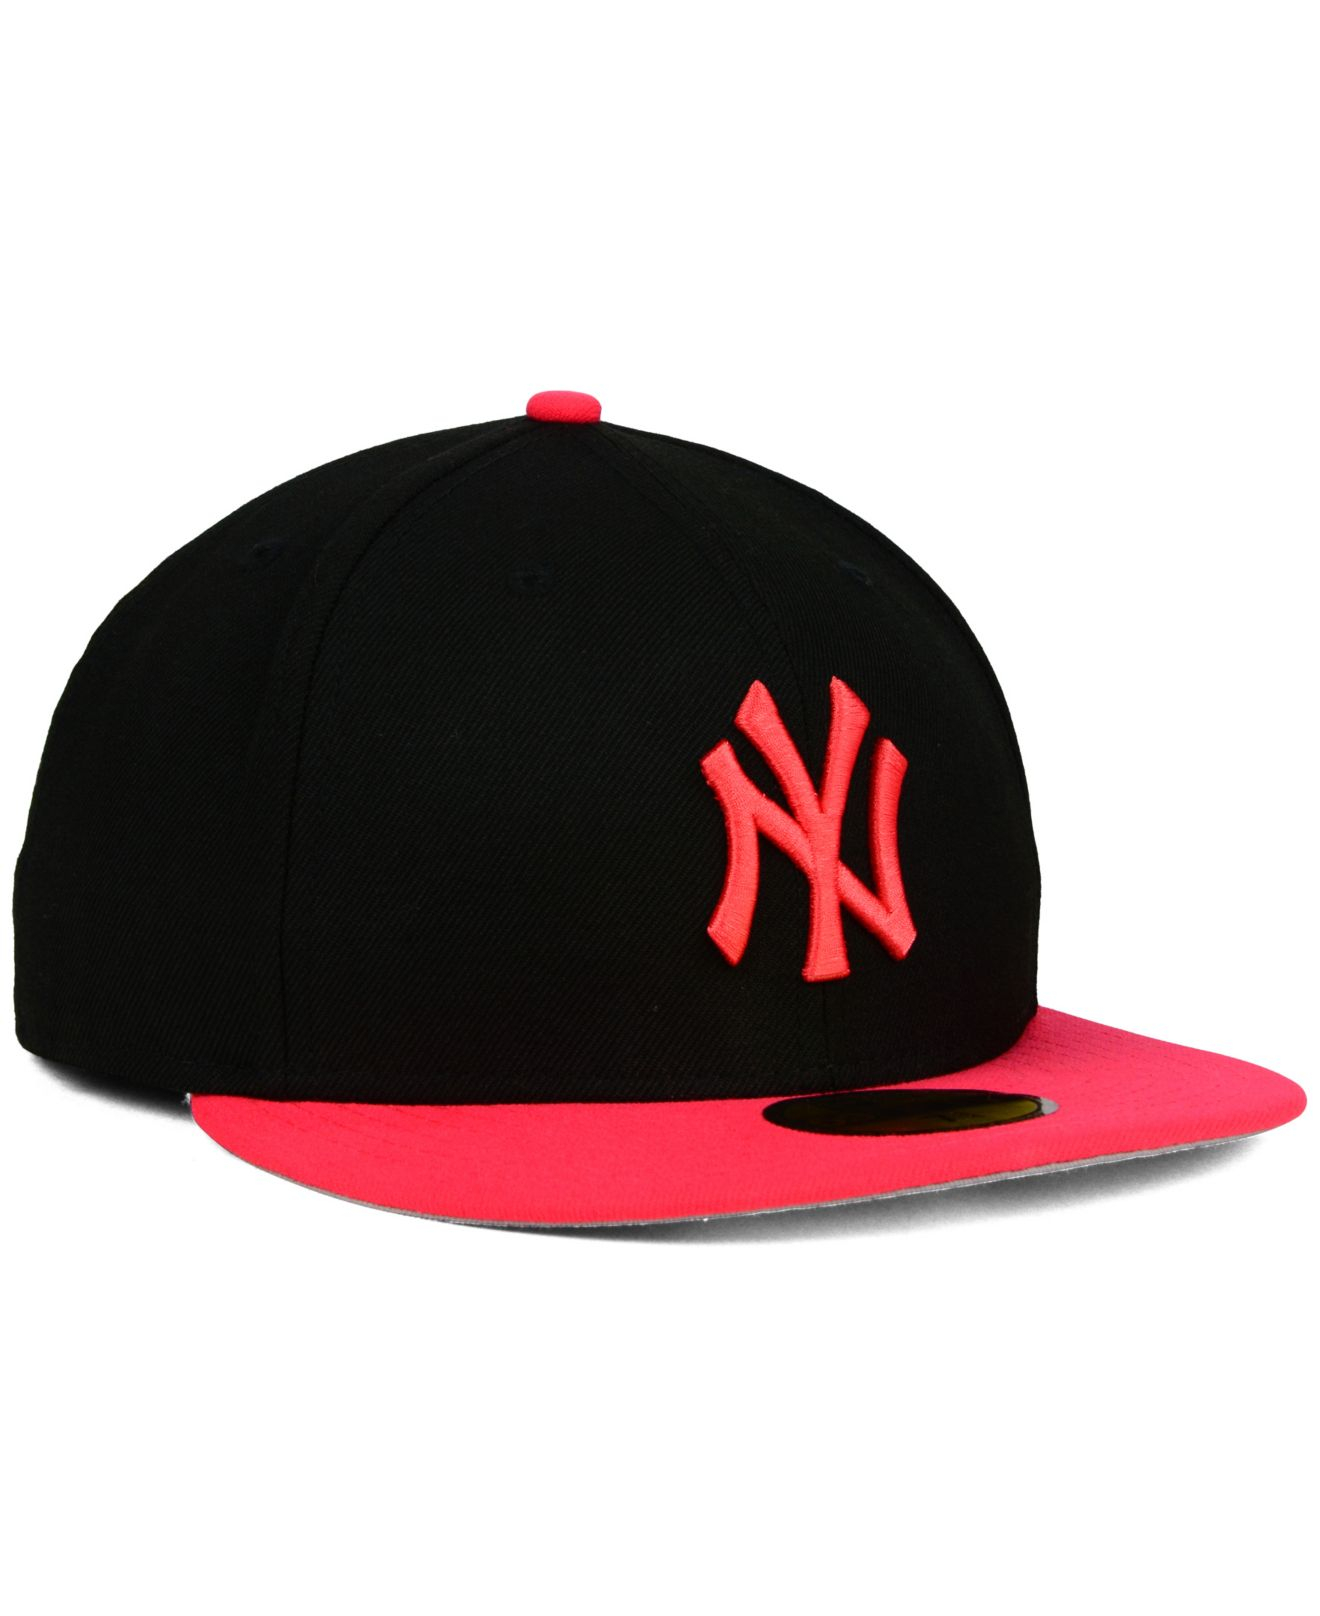 4e879690125 purchase mlb new york yankees vintage crownless bucket hat ebay 1f035  d9f89  sweden new york yankees rasta hat 2017 4fa07 fe34b